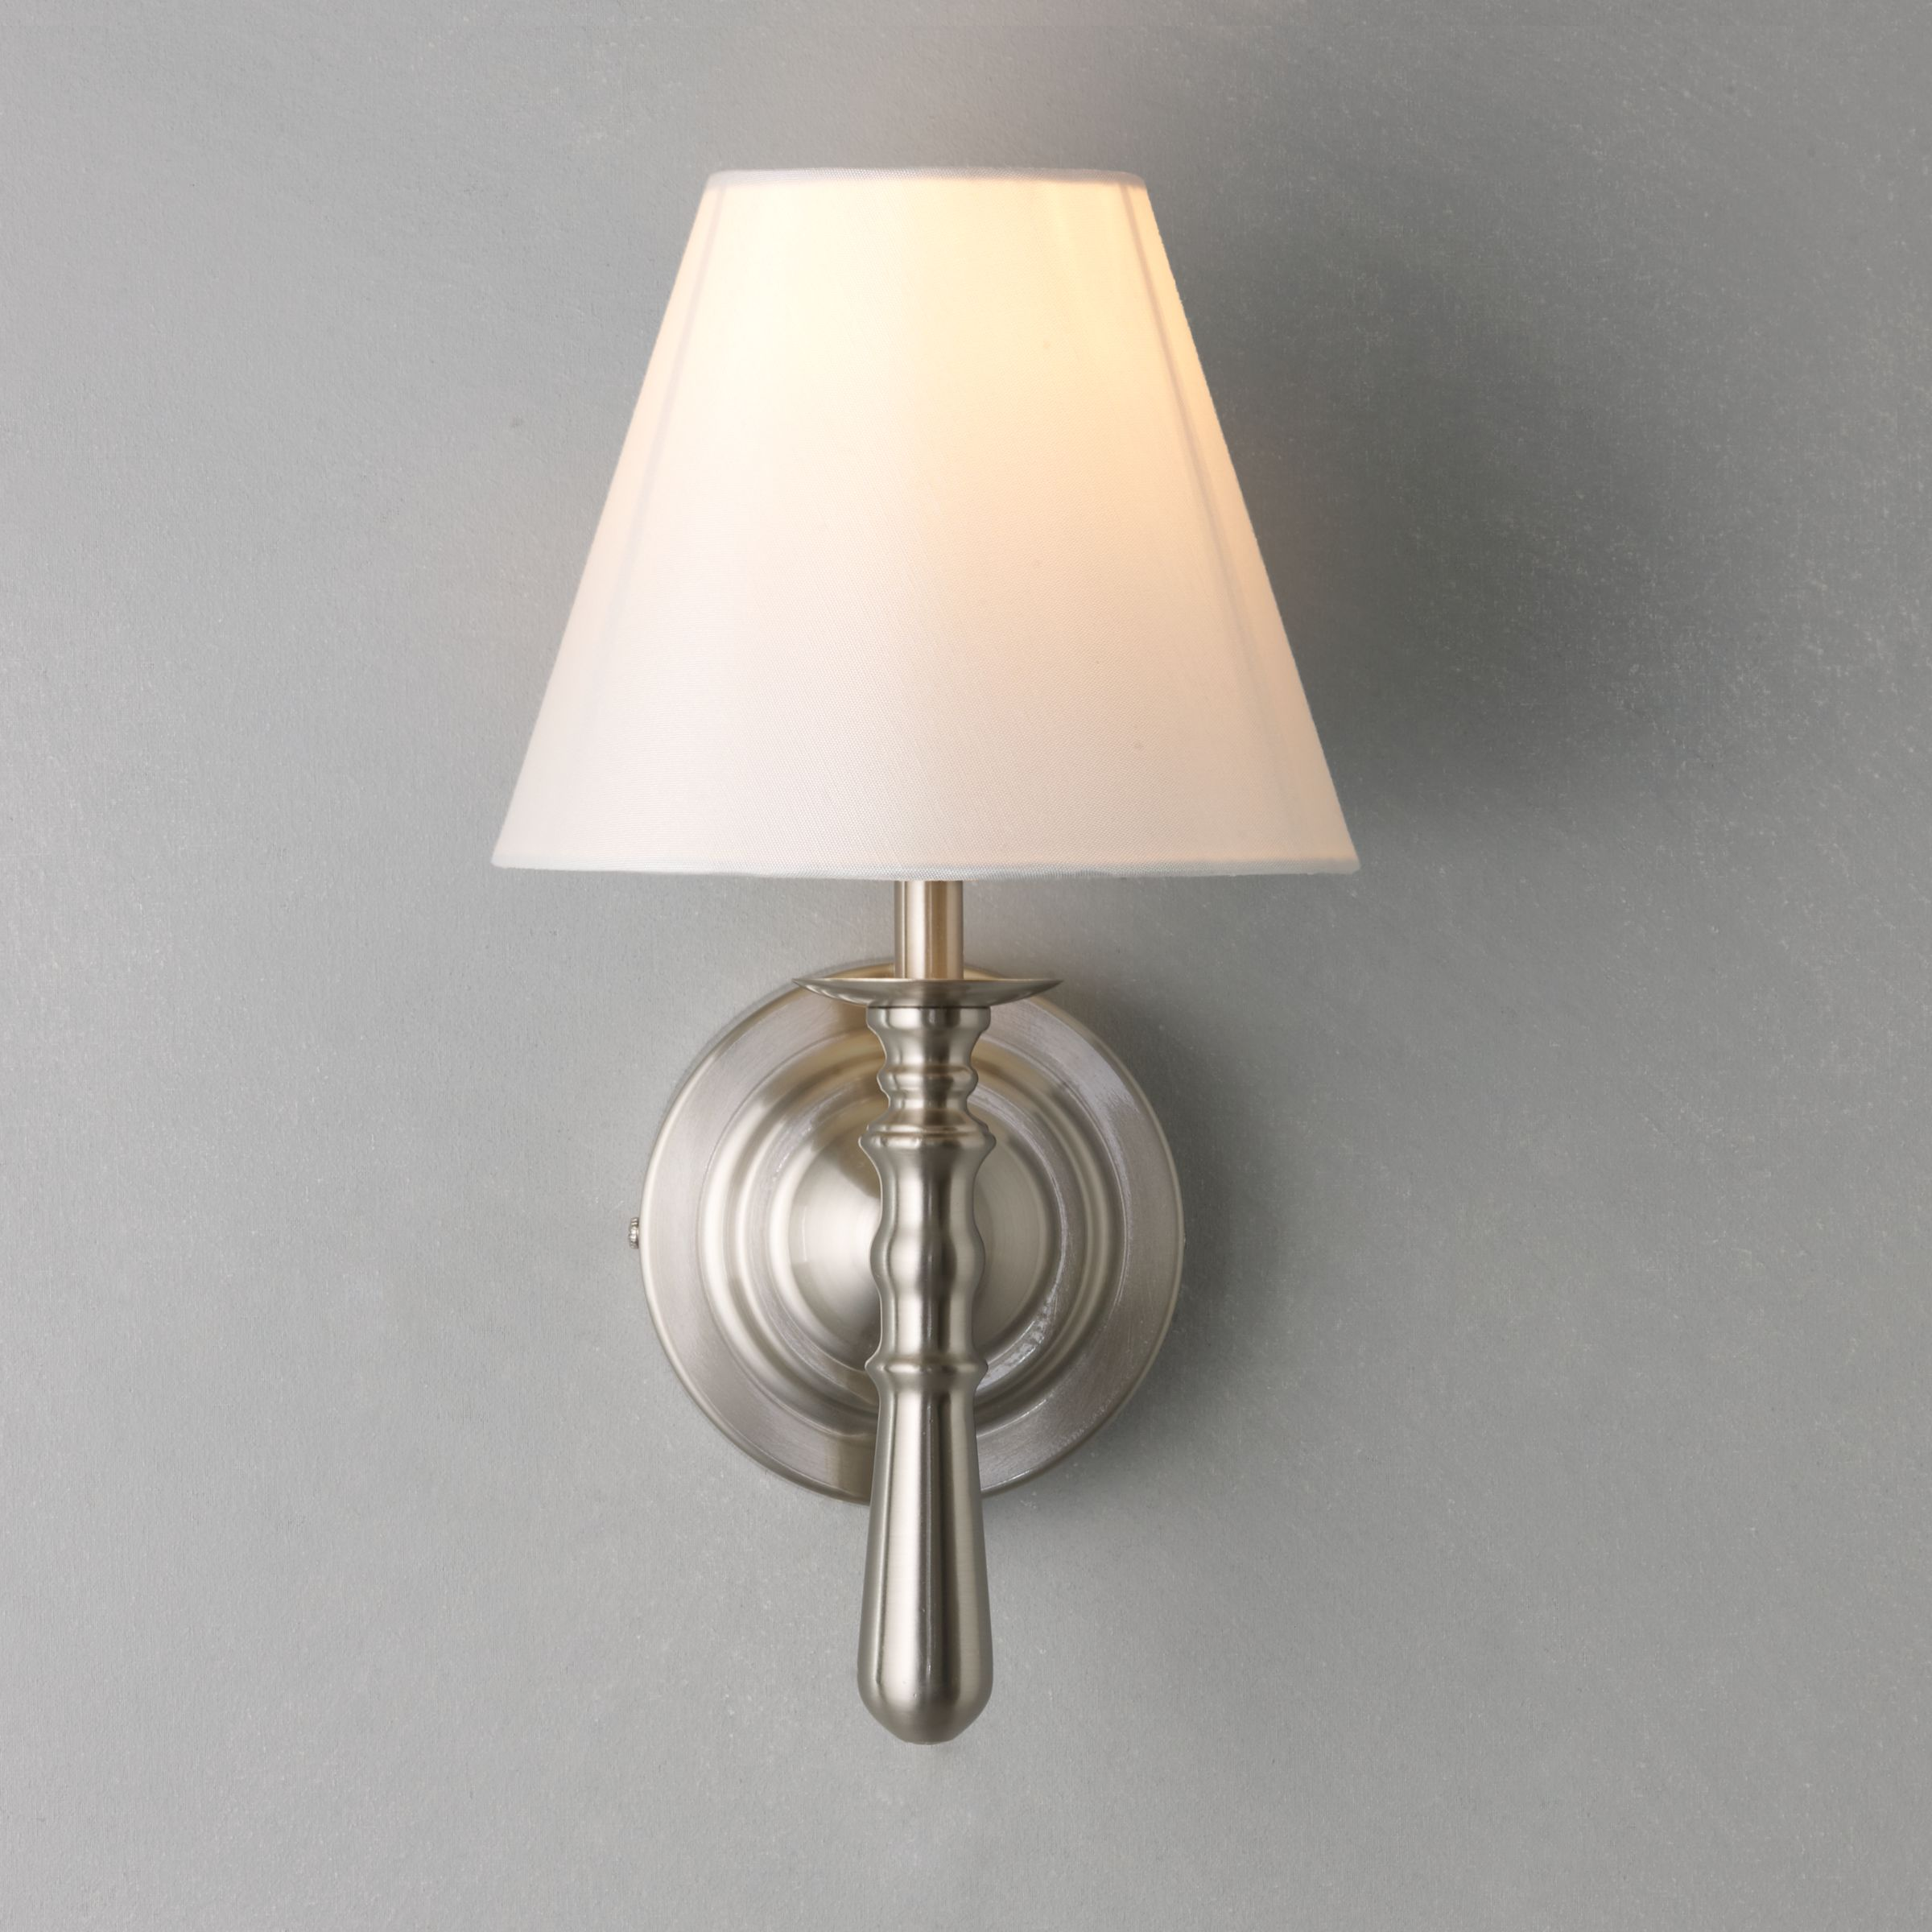 Buy John Lewis Sloane Wall Light, Satin Nickel John Lewis